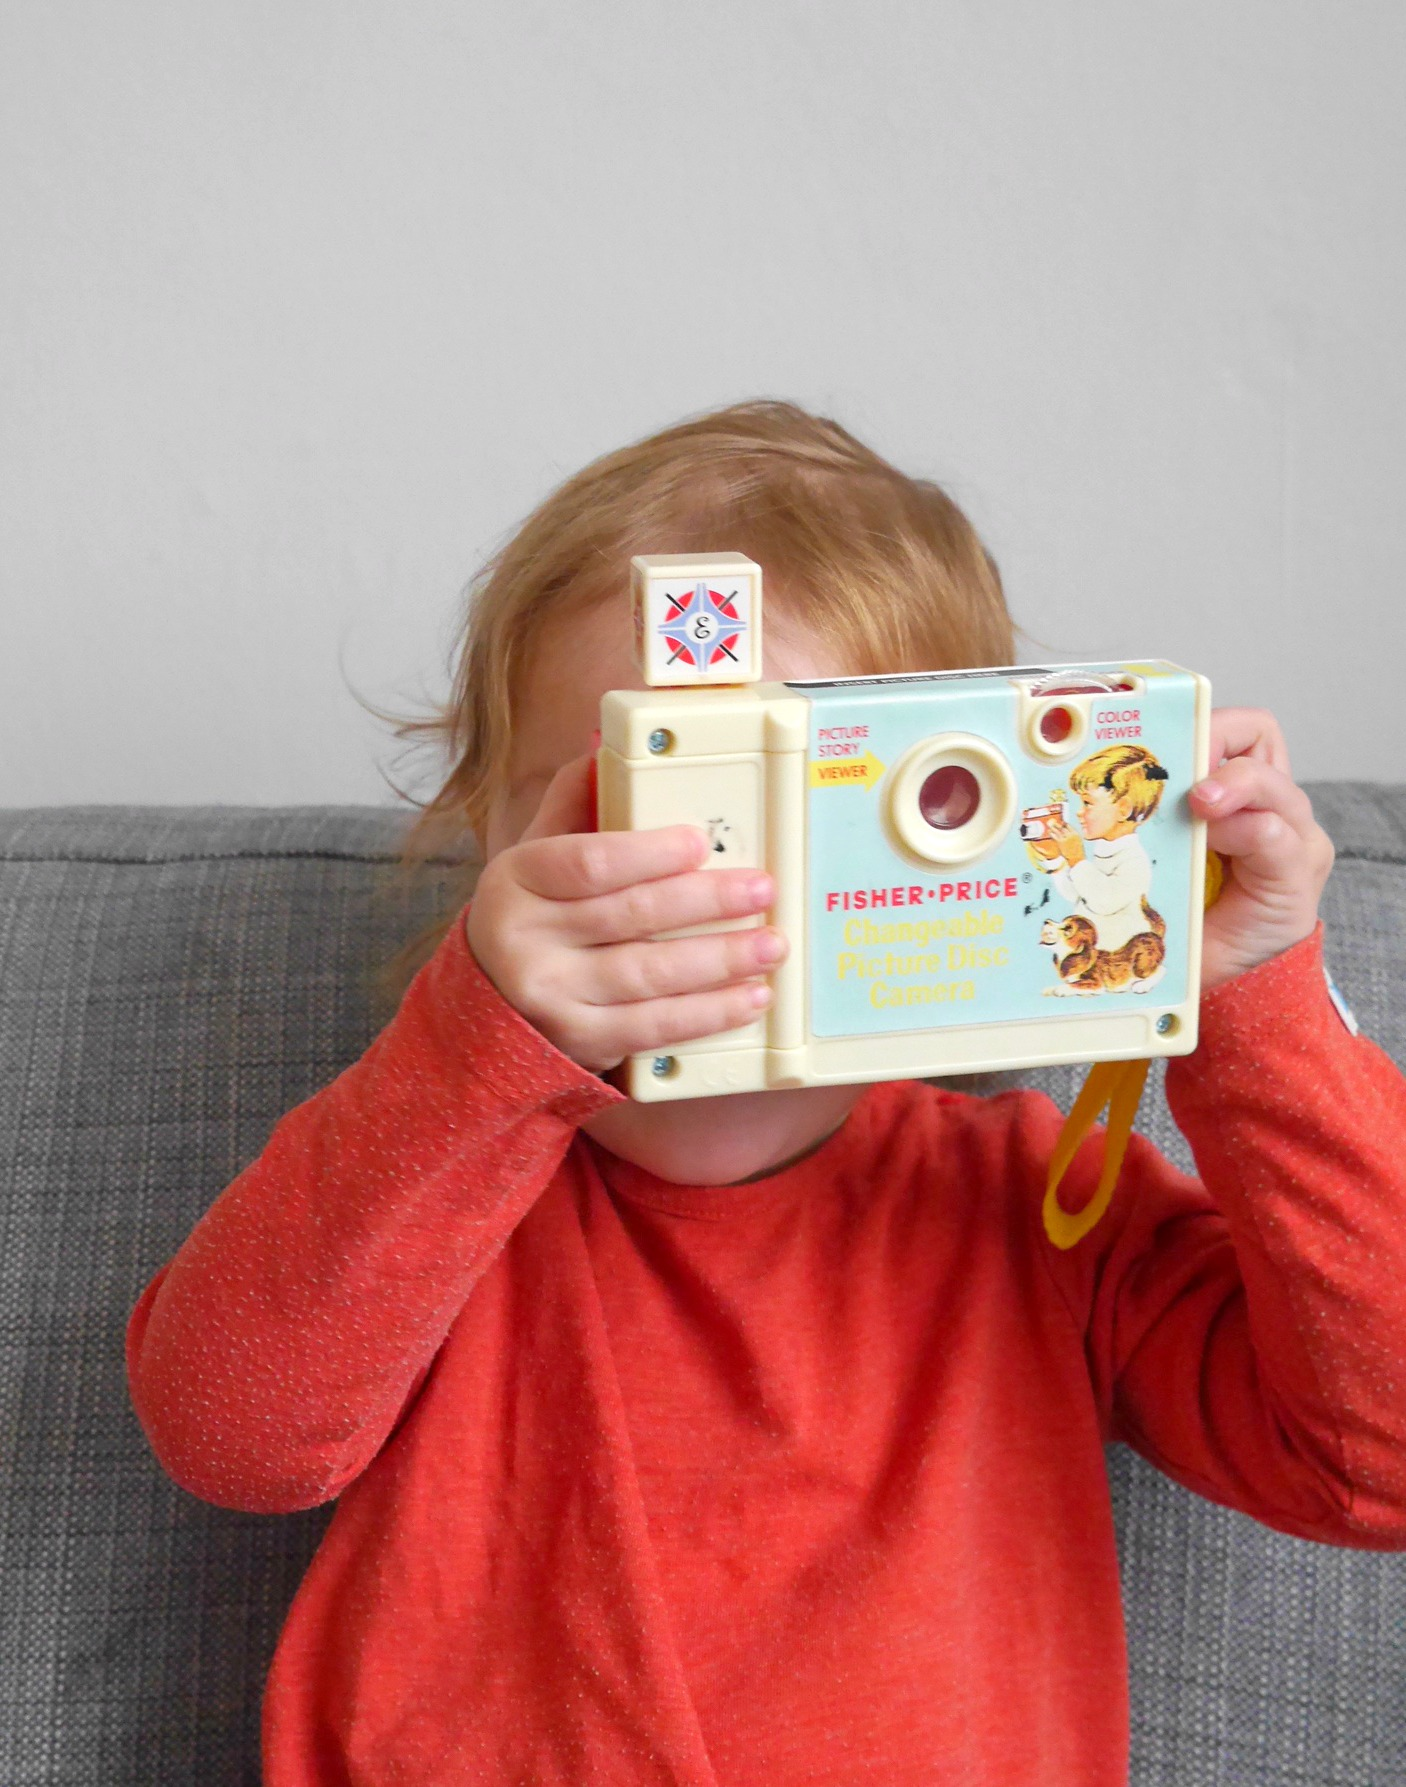 Fantasy parenting inventions - and Fisher Price retro cameras